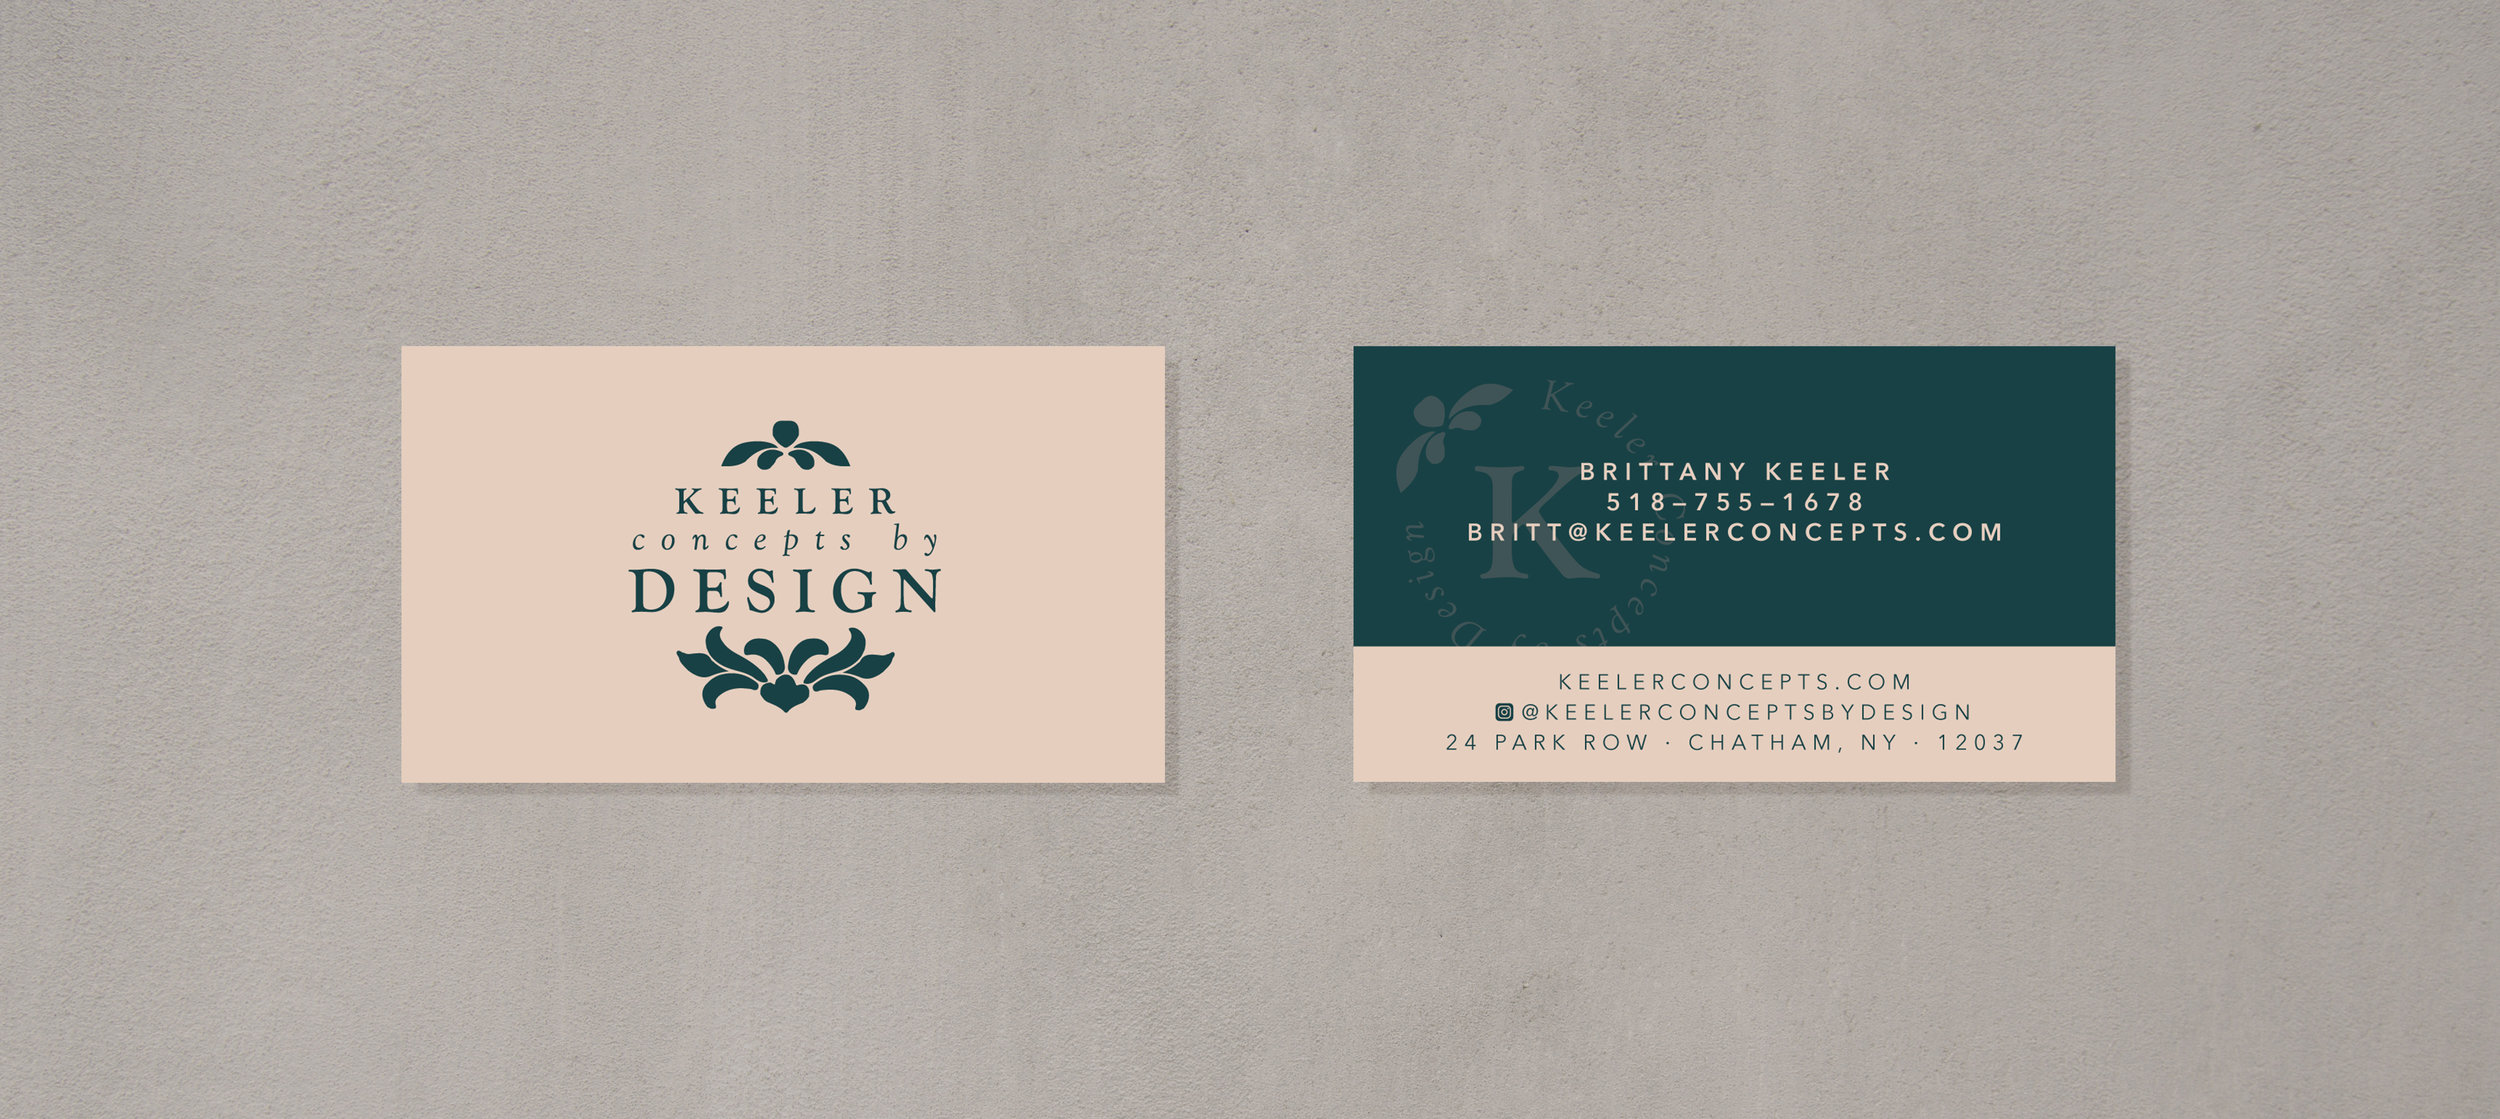 Keeler Business Card Final mockup.jpg